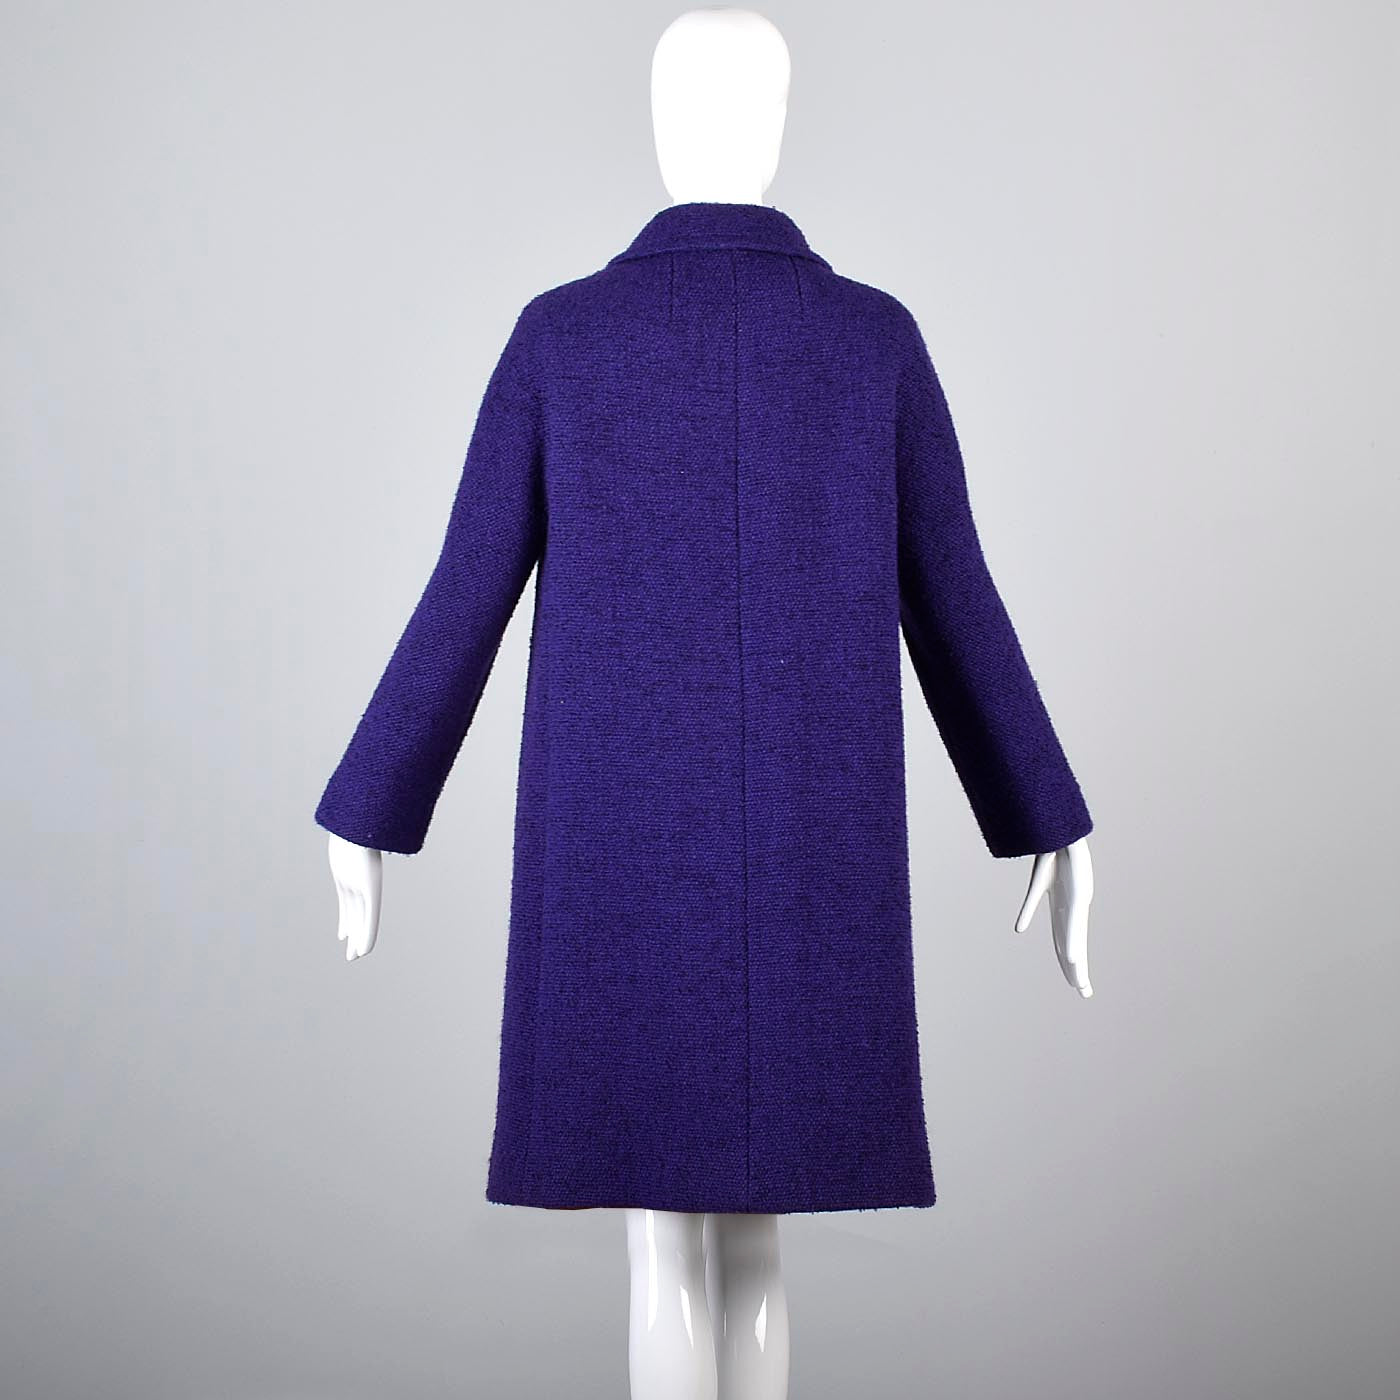 1960s Purple Tweed Coat